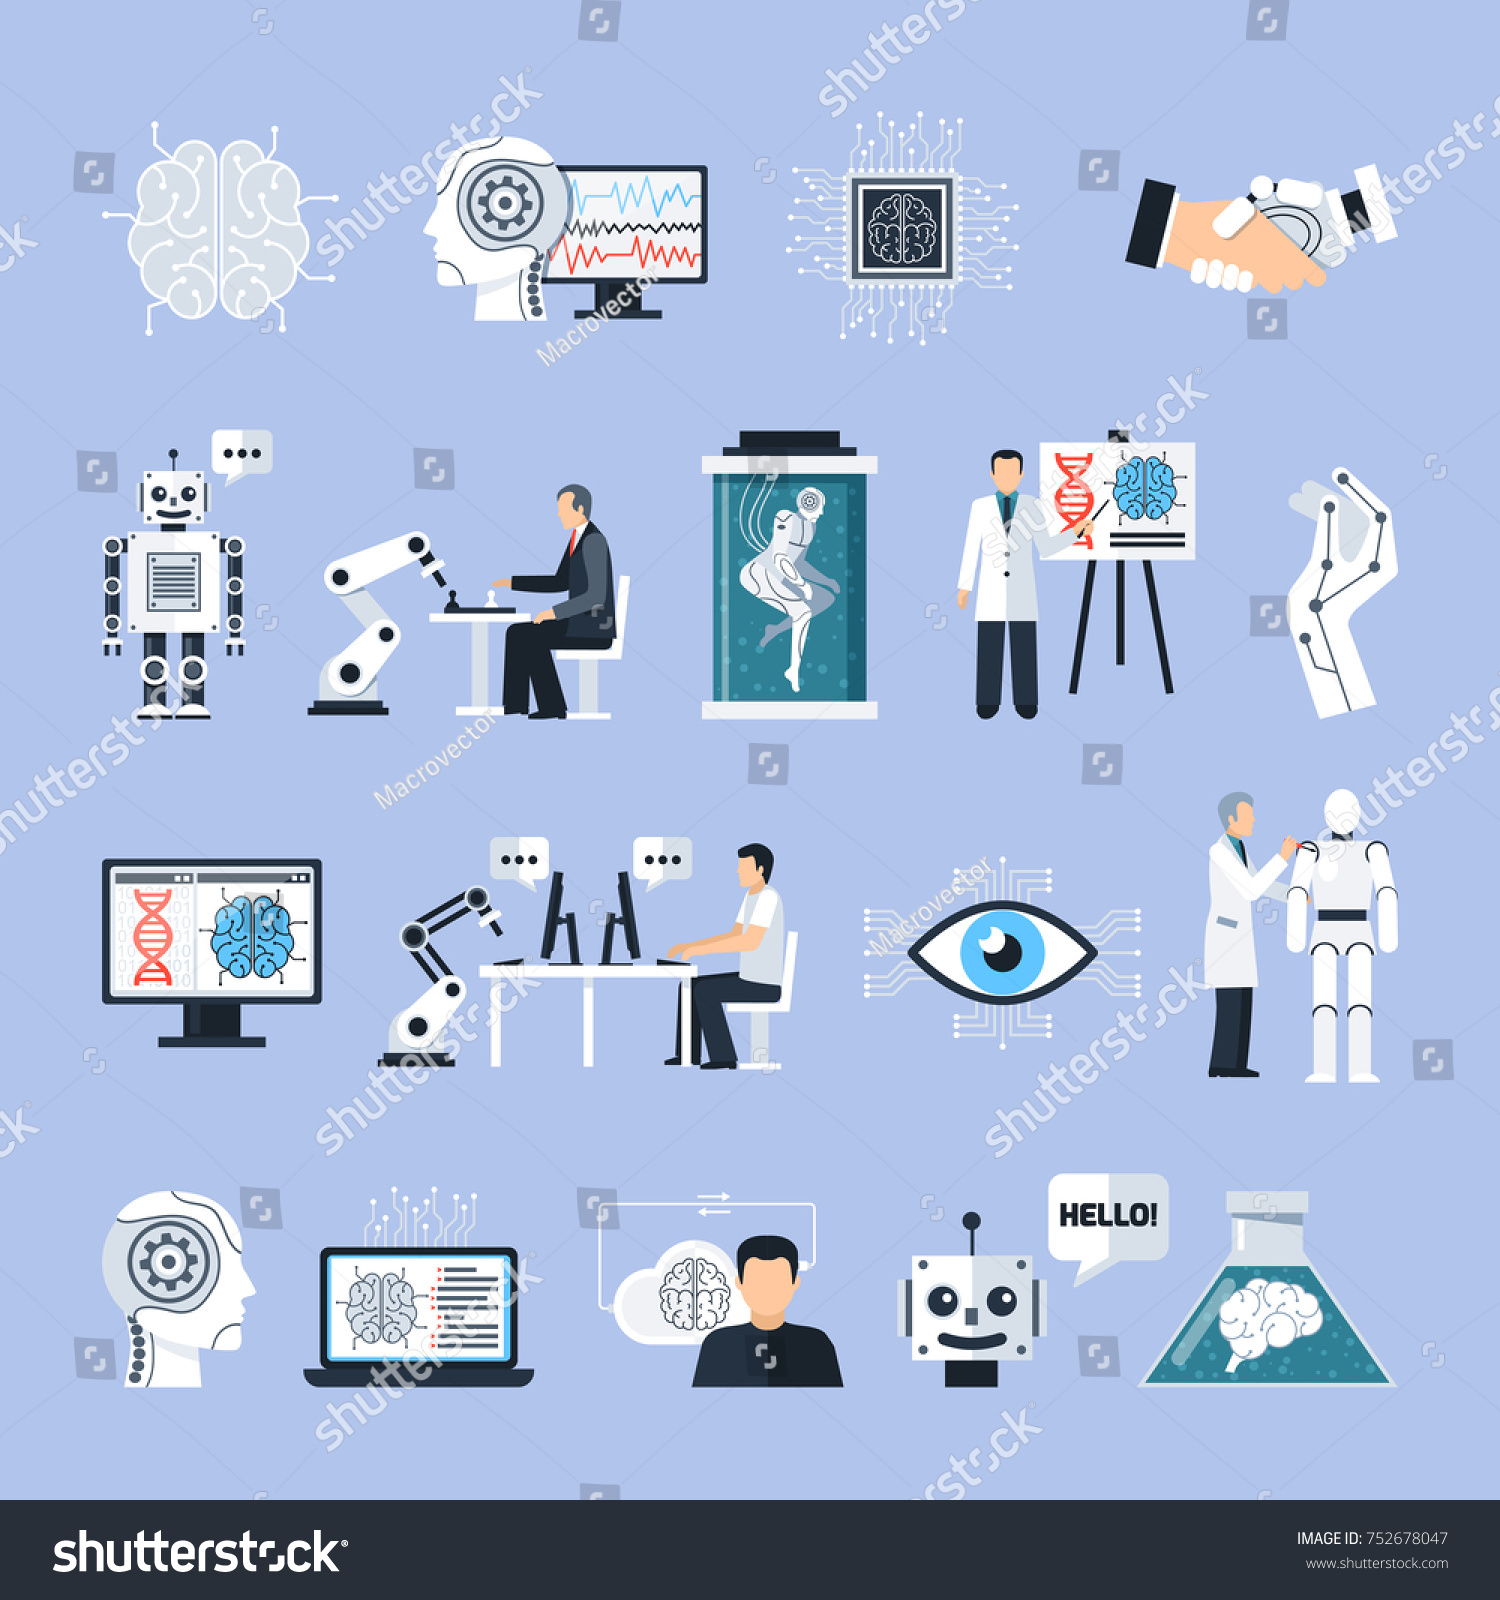 Touch bionics stock symbol gallery symbol and sign ideas artificial intelligence icons set technology symbols stock artificial intelligence icons set with technology symbols flat isolated buycottarizona Choice Image